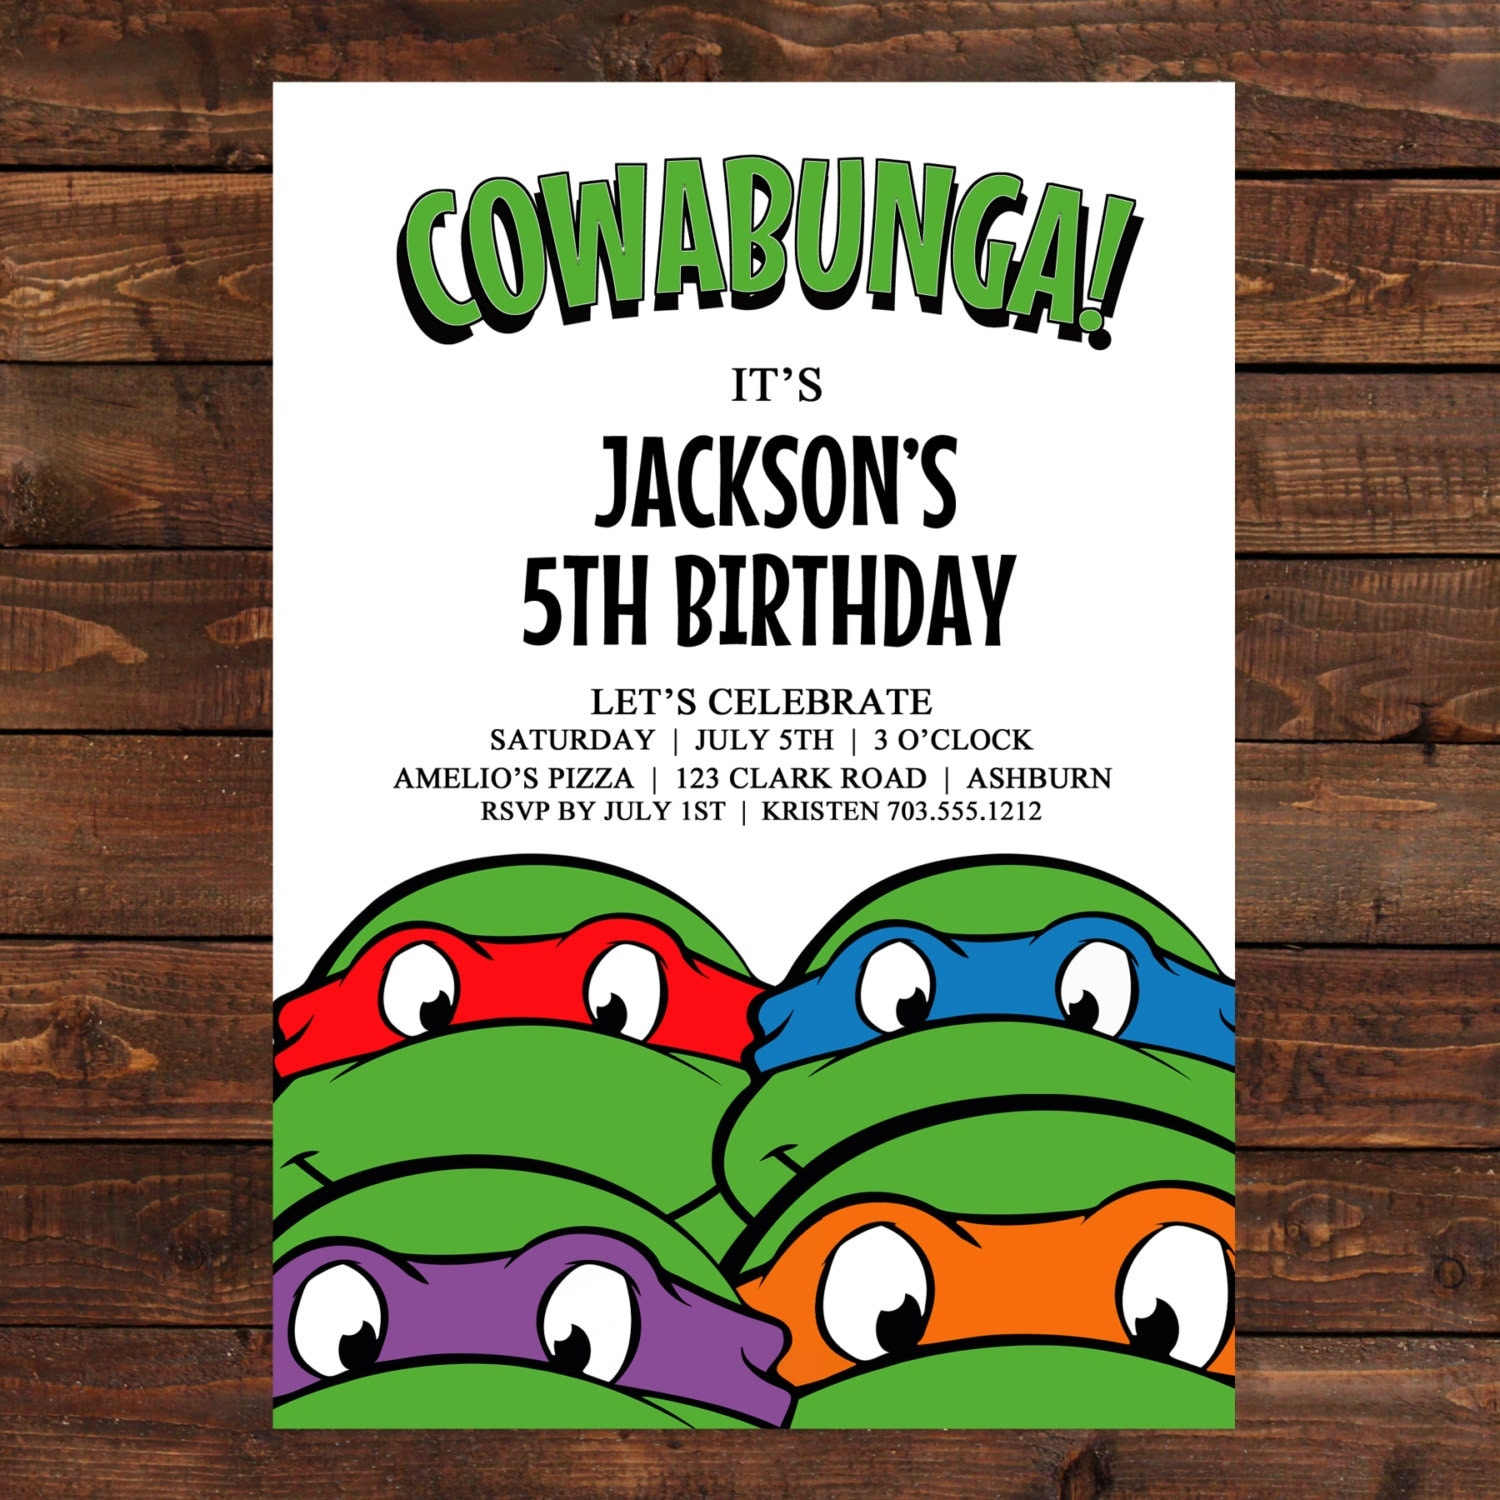 Teenage mutant ninja turtles invitations template - photo#2